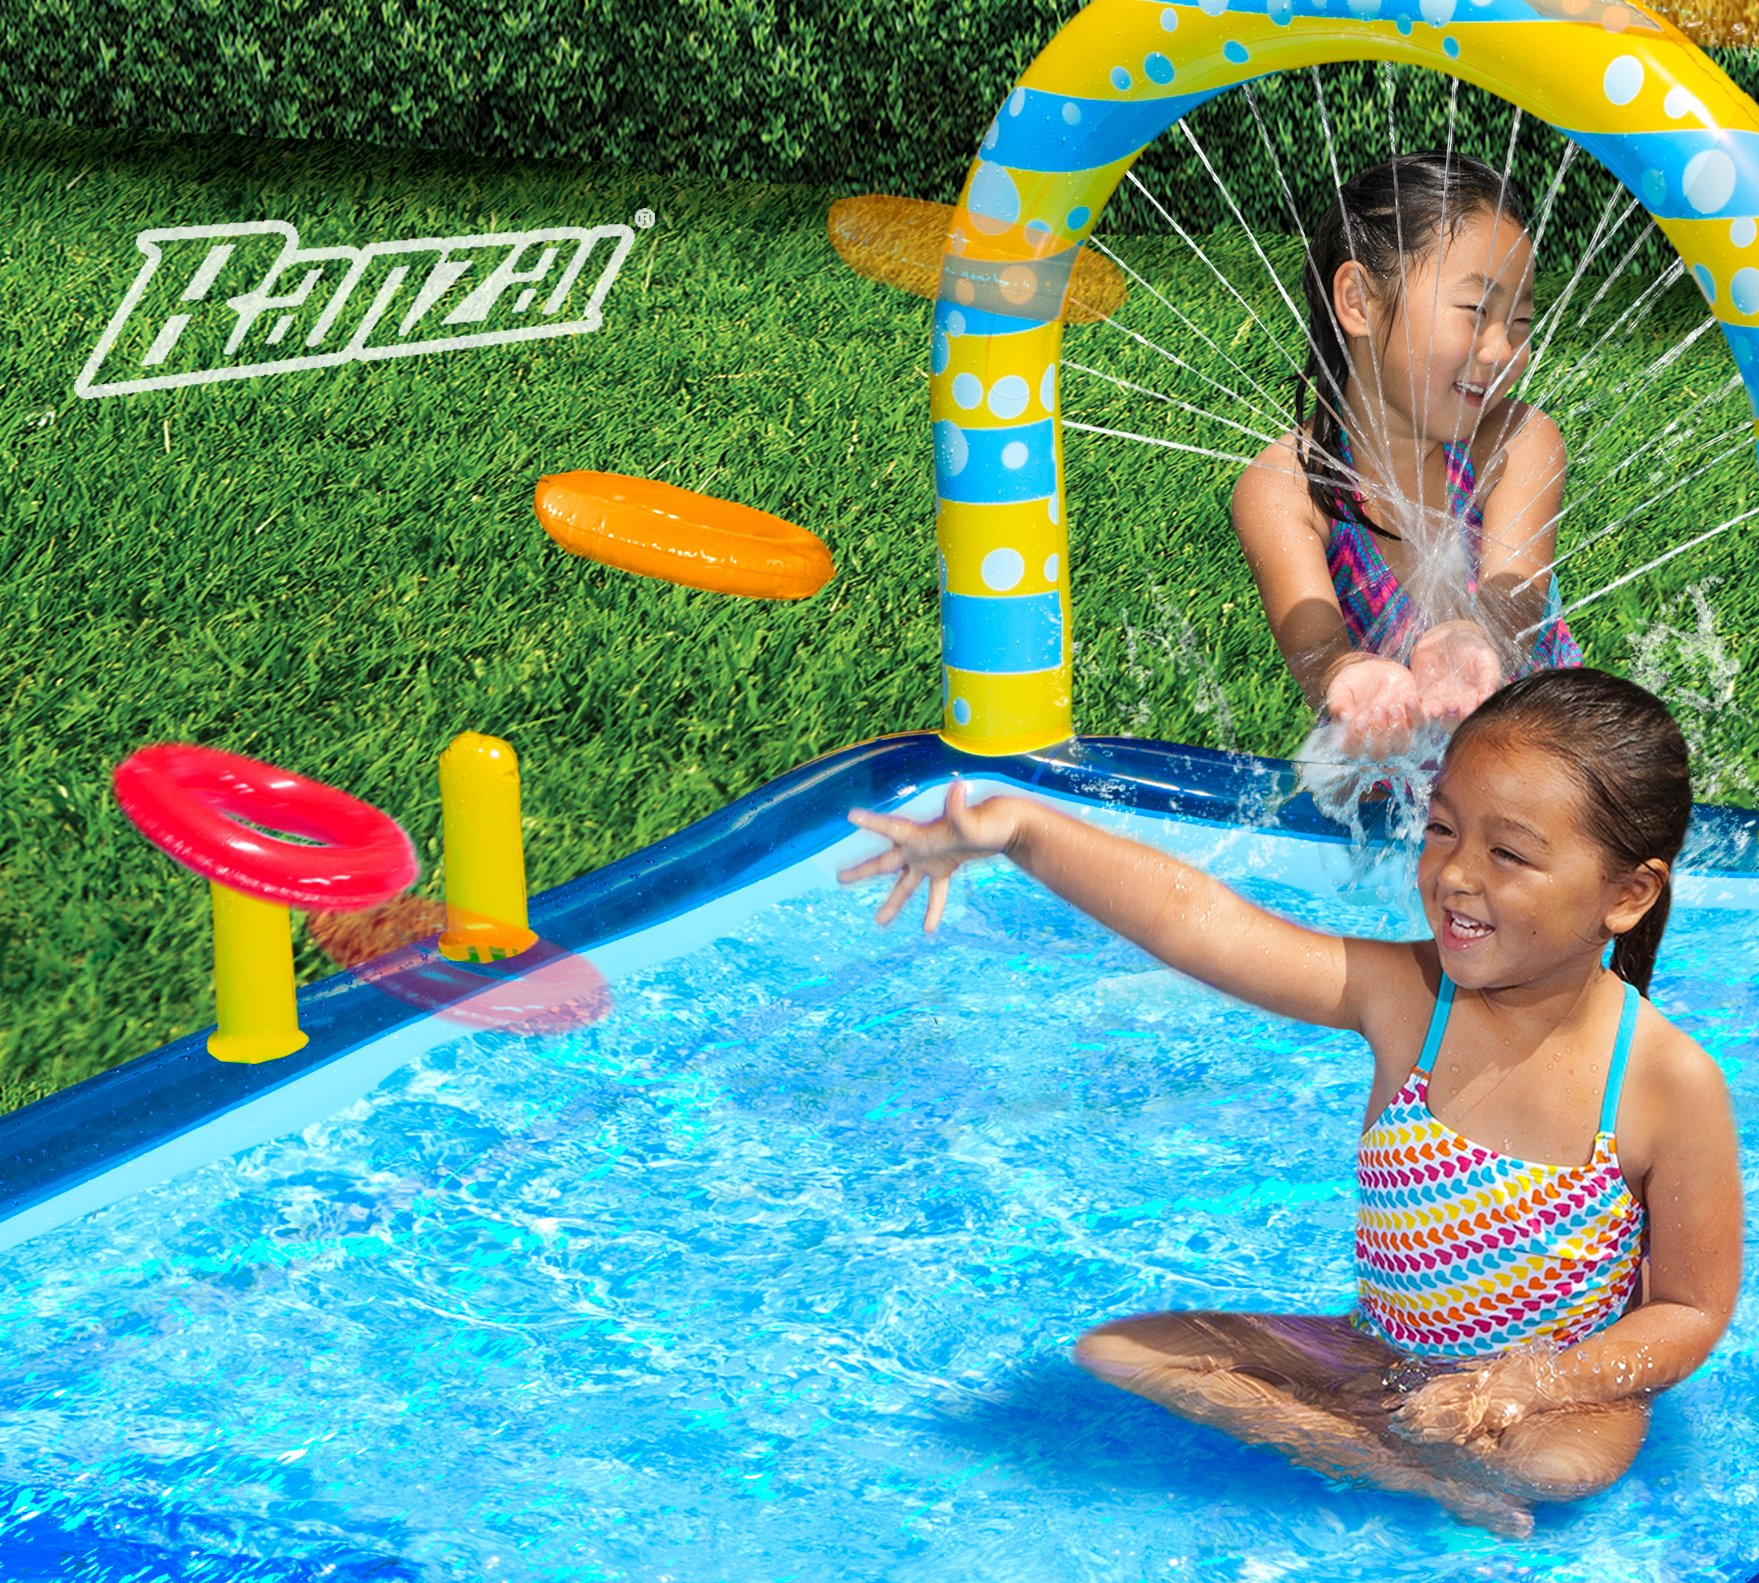 BANZAI Obstacle Course Activity Pool by BANZAI (Image #7)